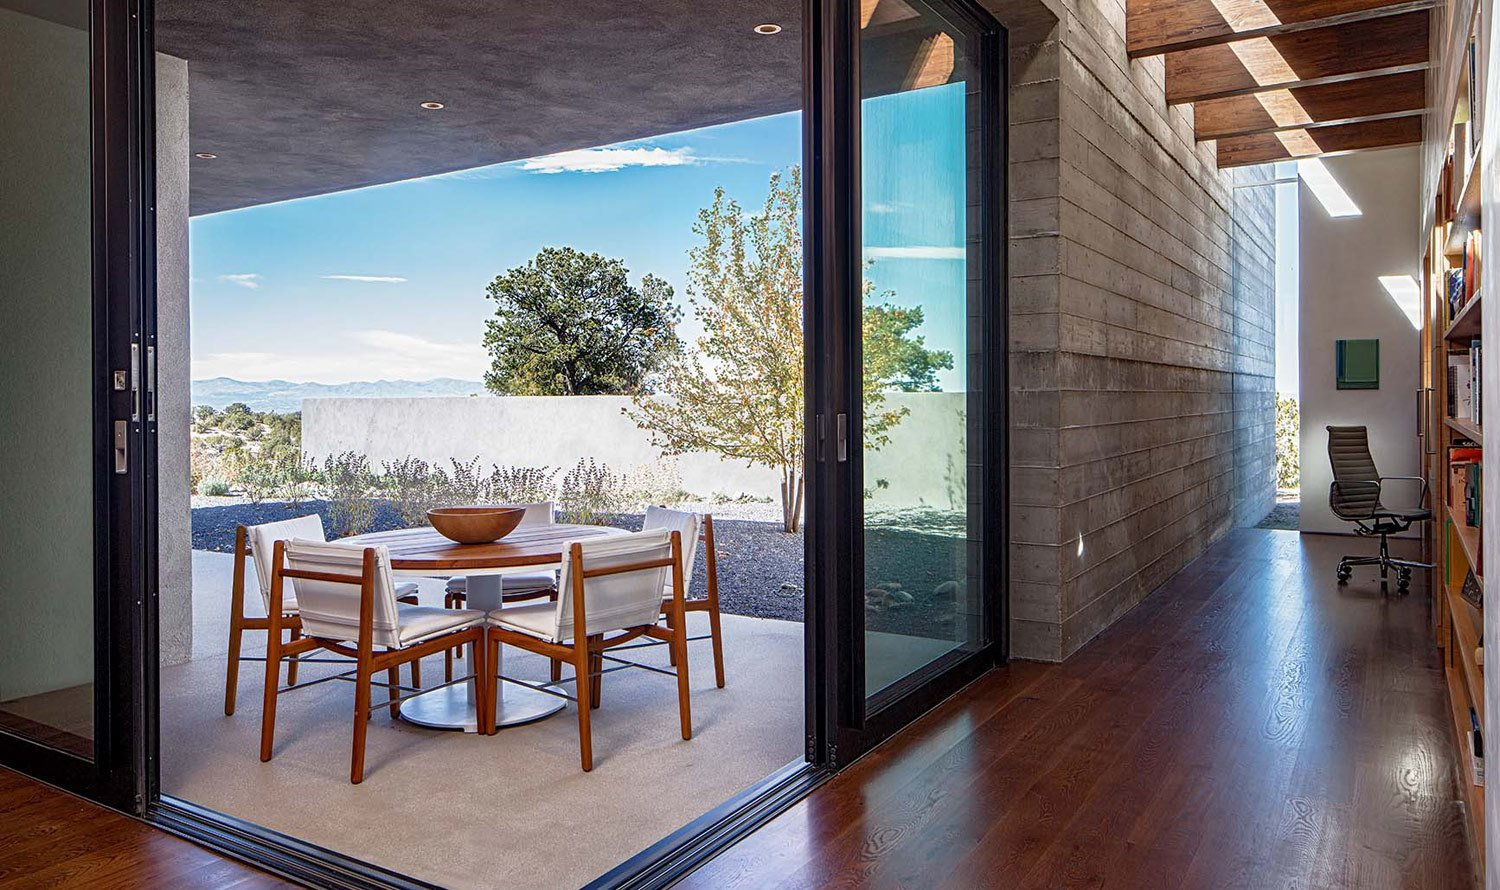 Sundial House, Patio.  Sundial House by Specht Architects